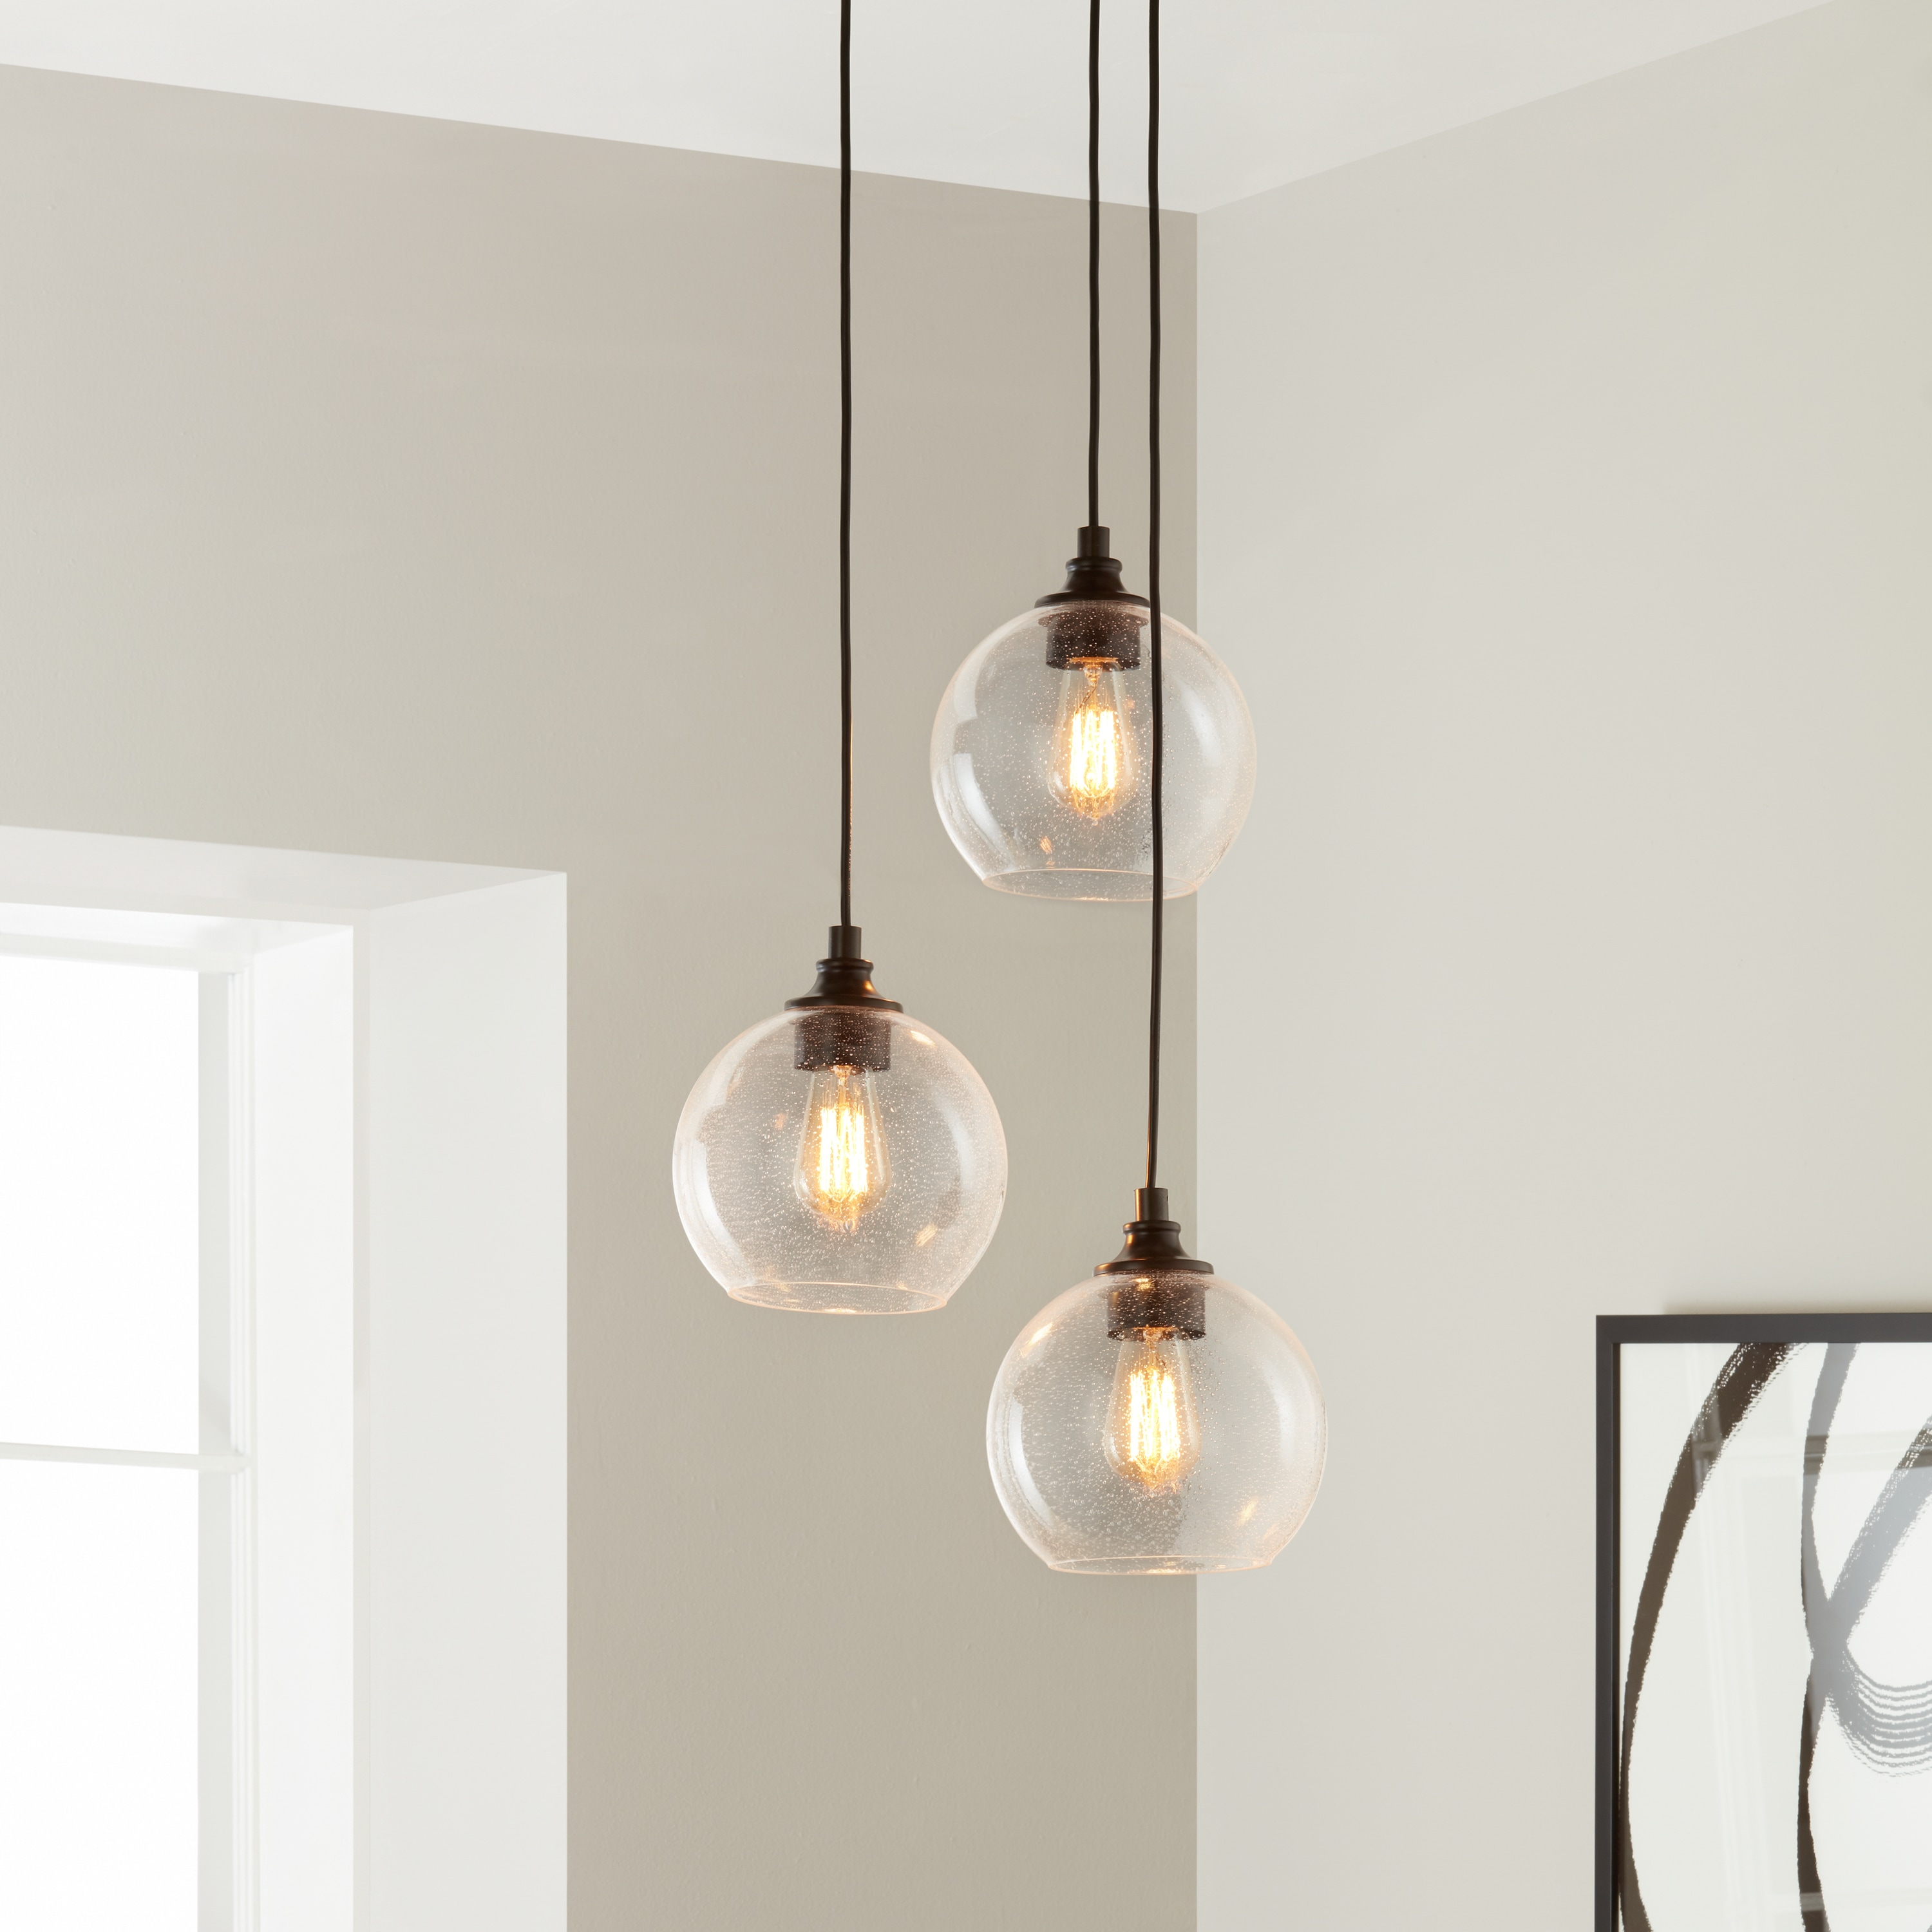 standard ceiling warehouse black sky cobalt barn light lighting chief electric shade blue enamel inch cord pendant porcelain sbk pendants the ivanhoe